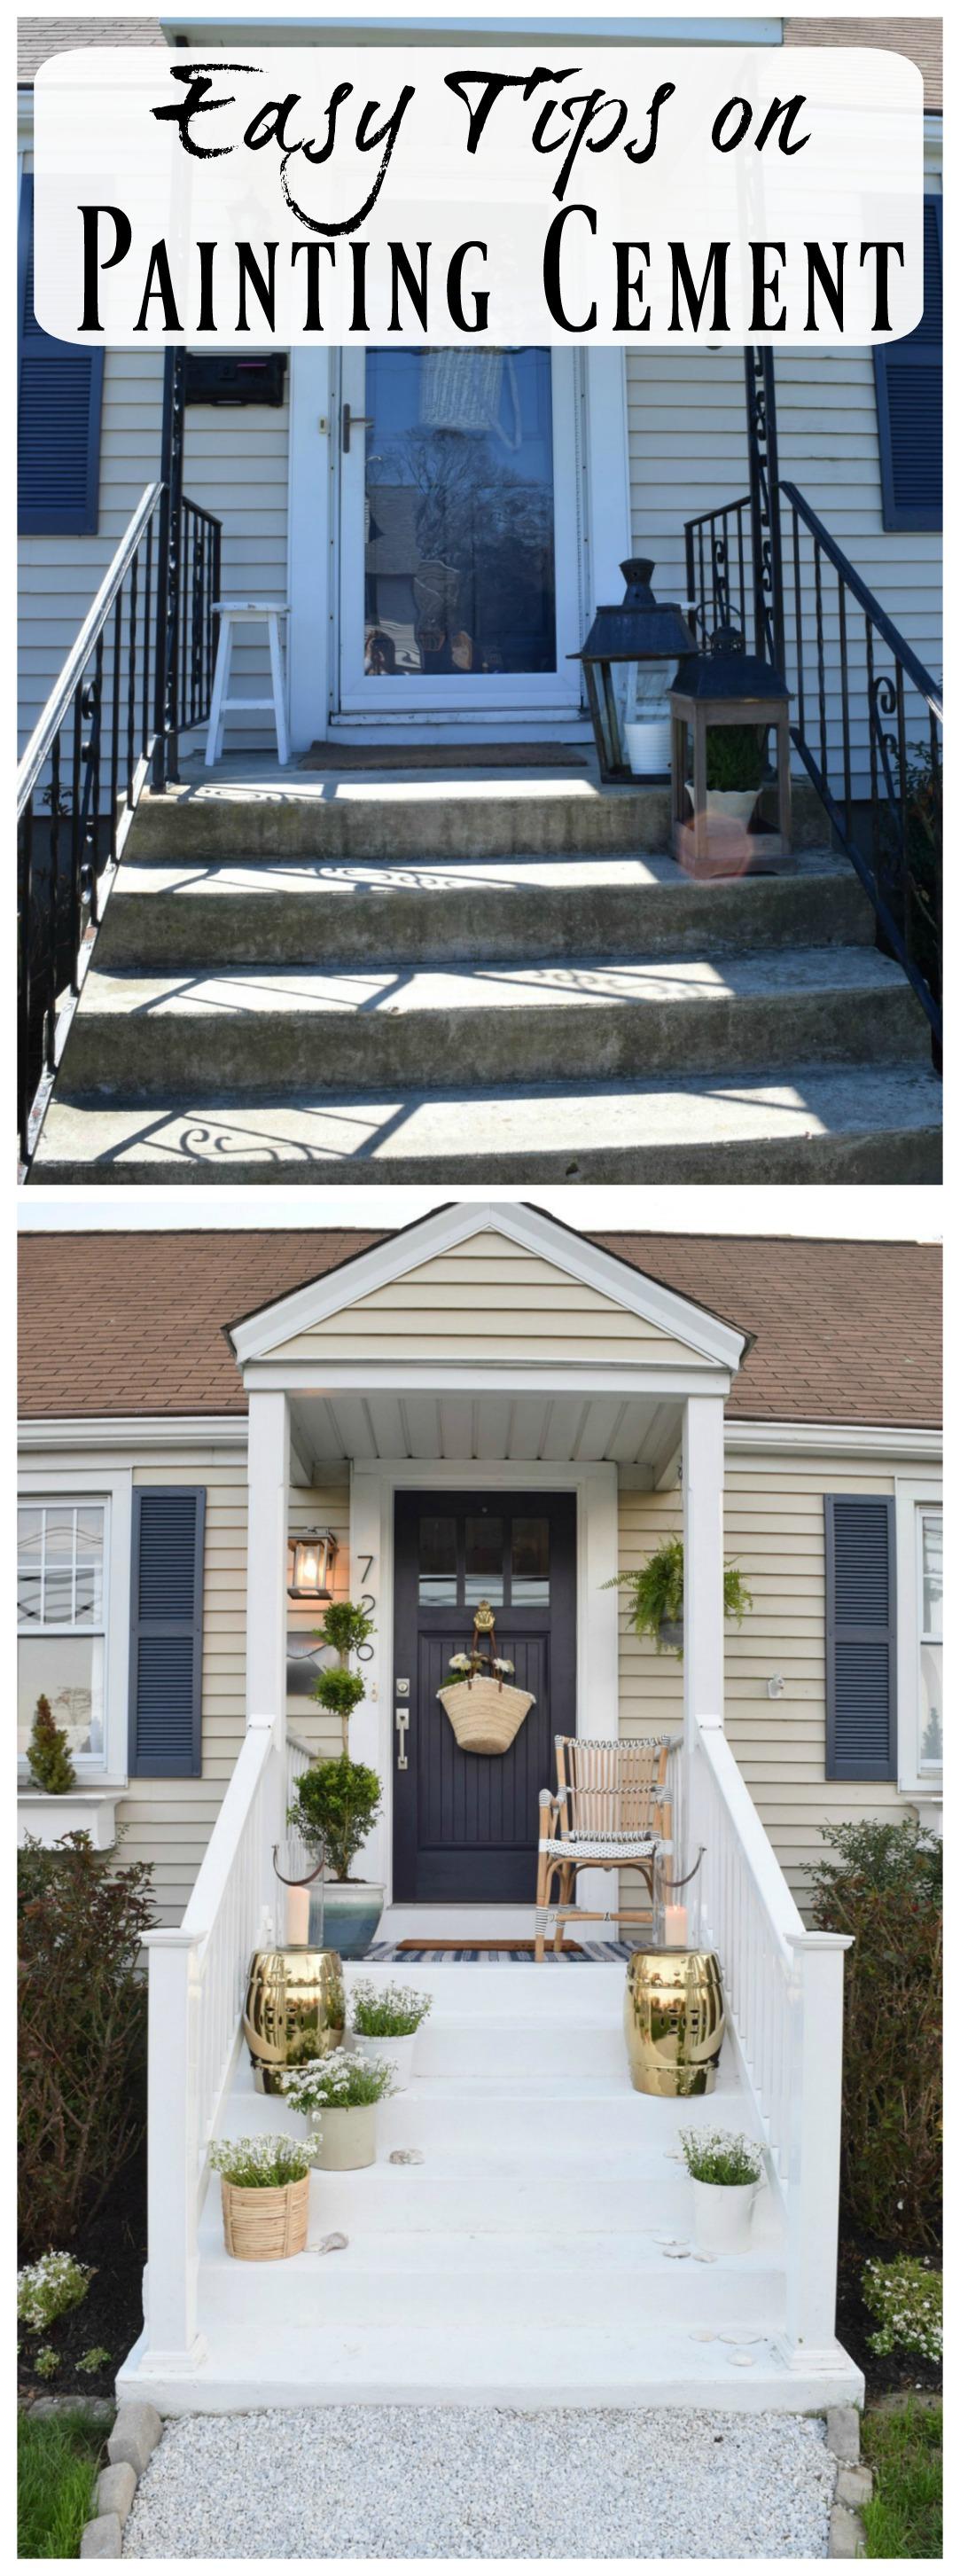 Painted Cement Steps and Top Favorite Painted Patios ... on Diy Concrete Patio Ideas id=14099